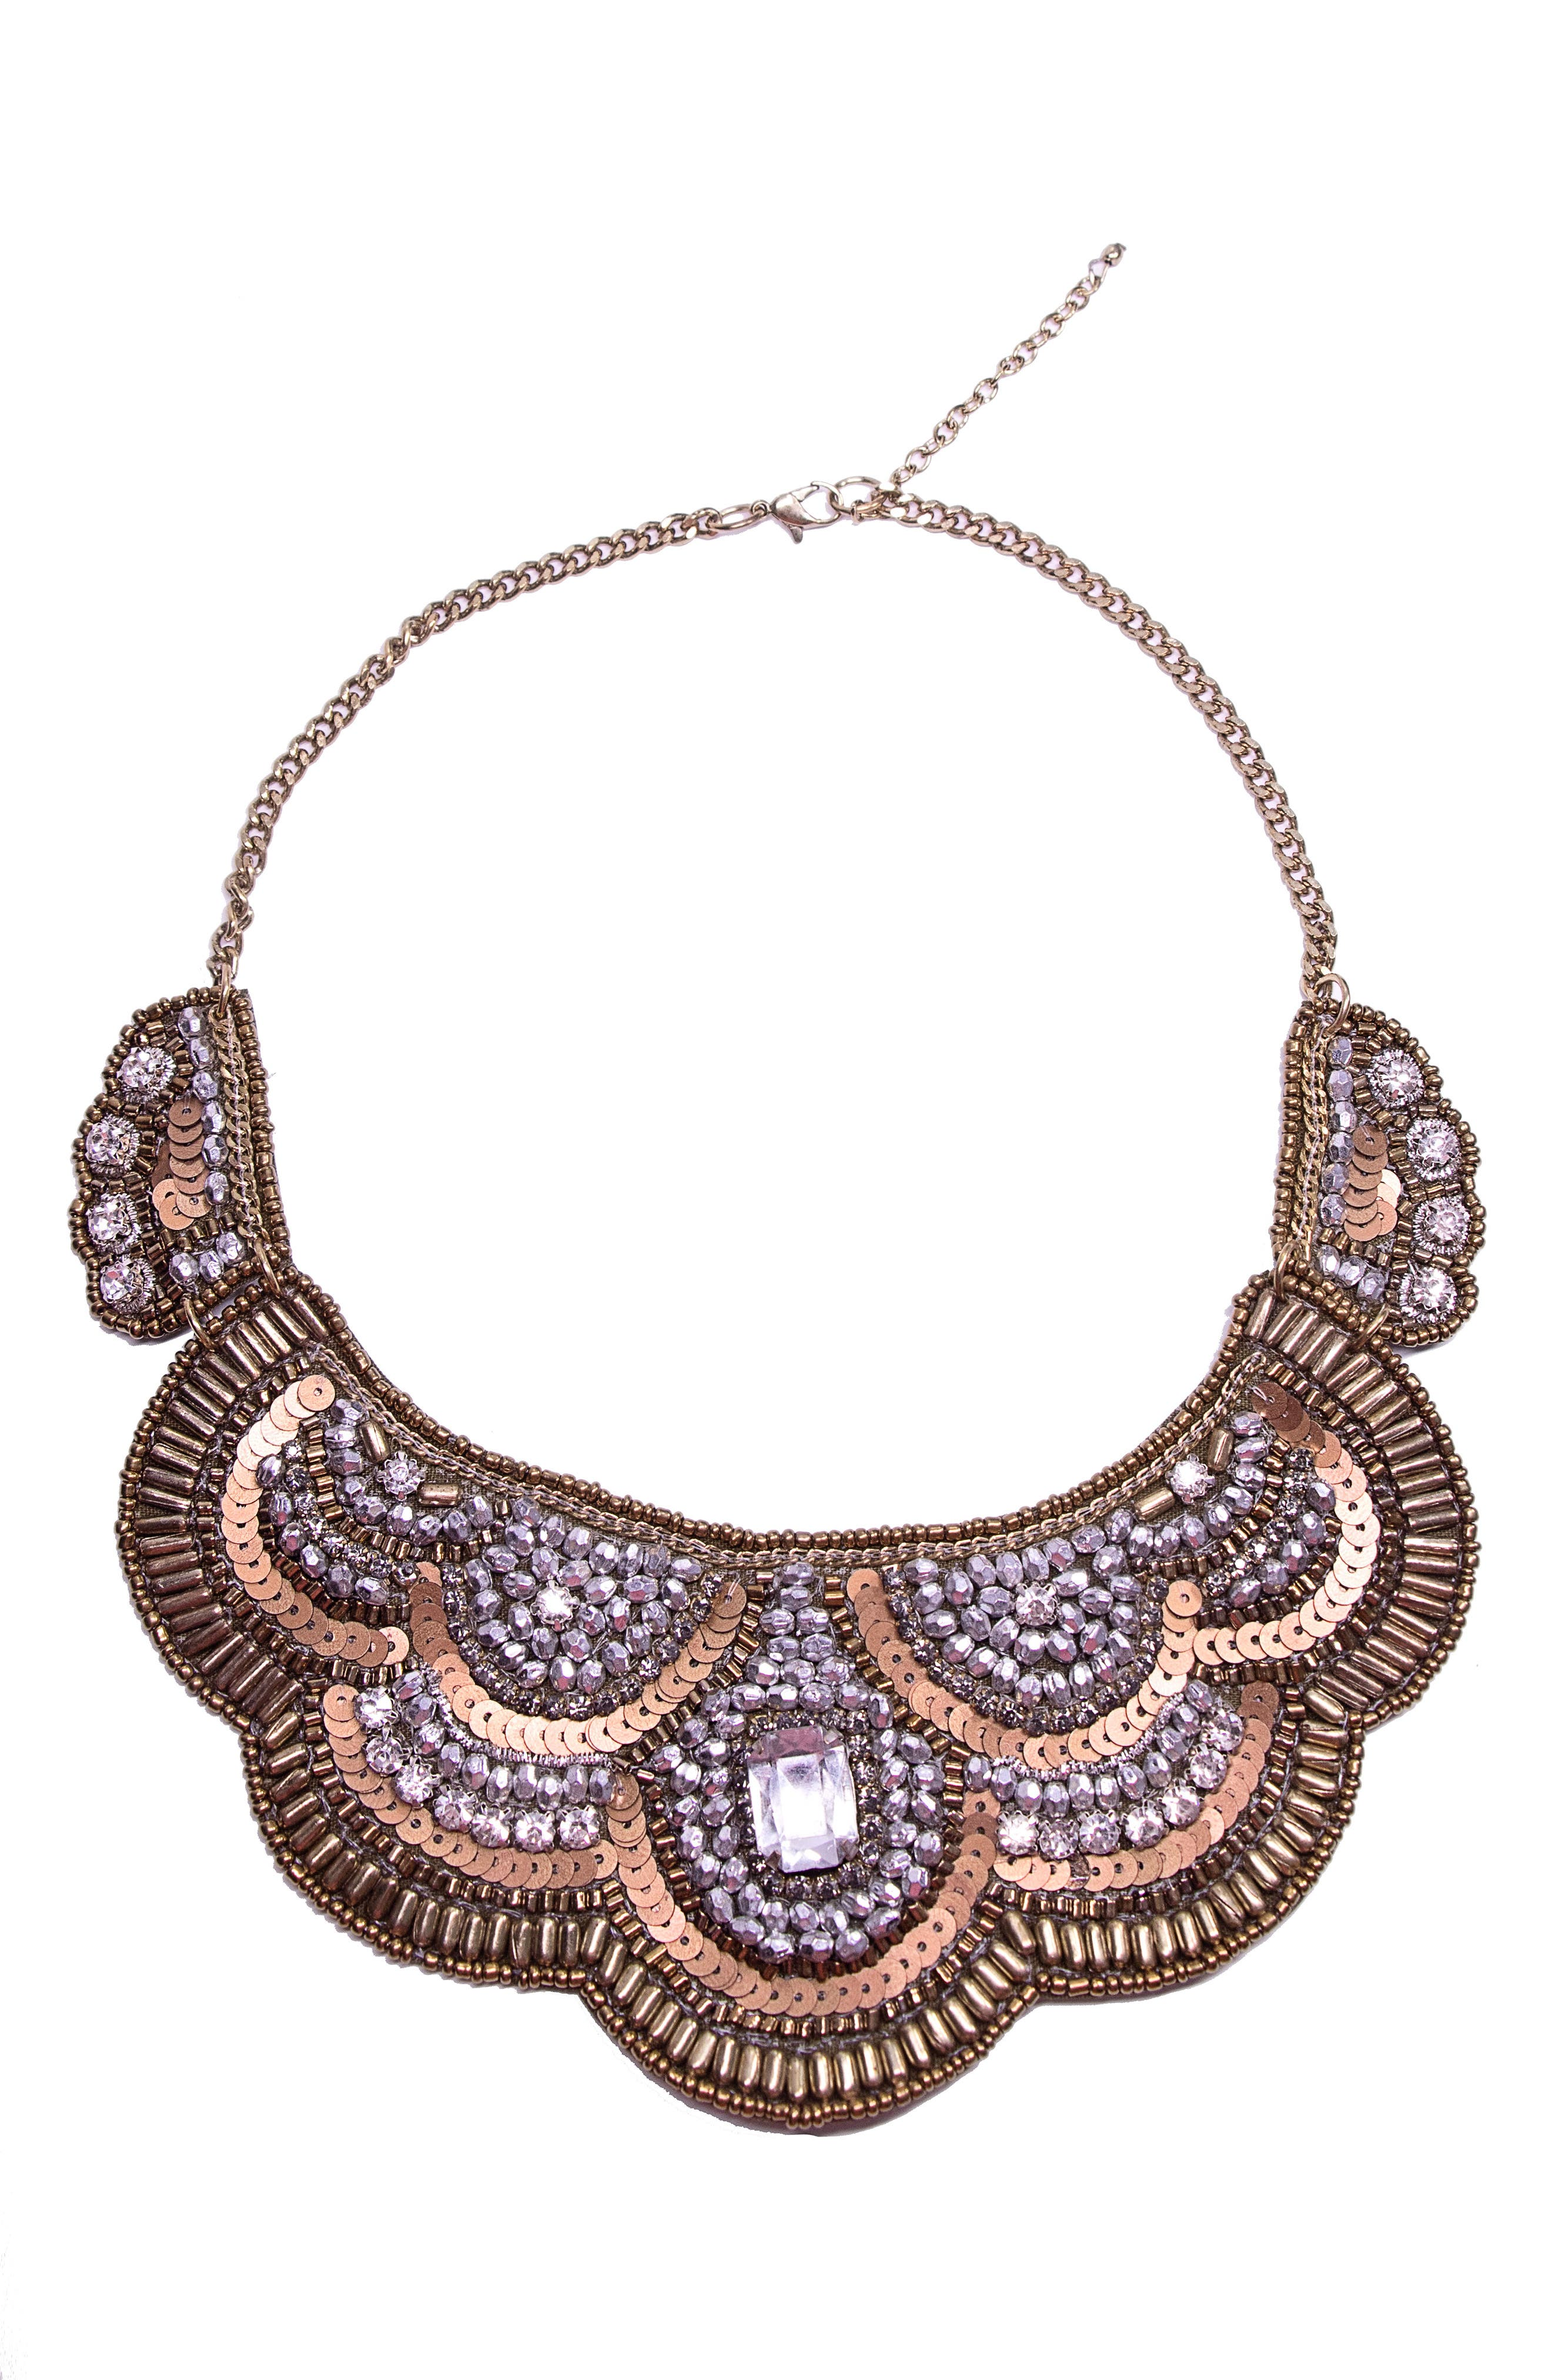 Main Image - Area Stars Bette Bib Necklace